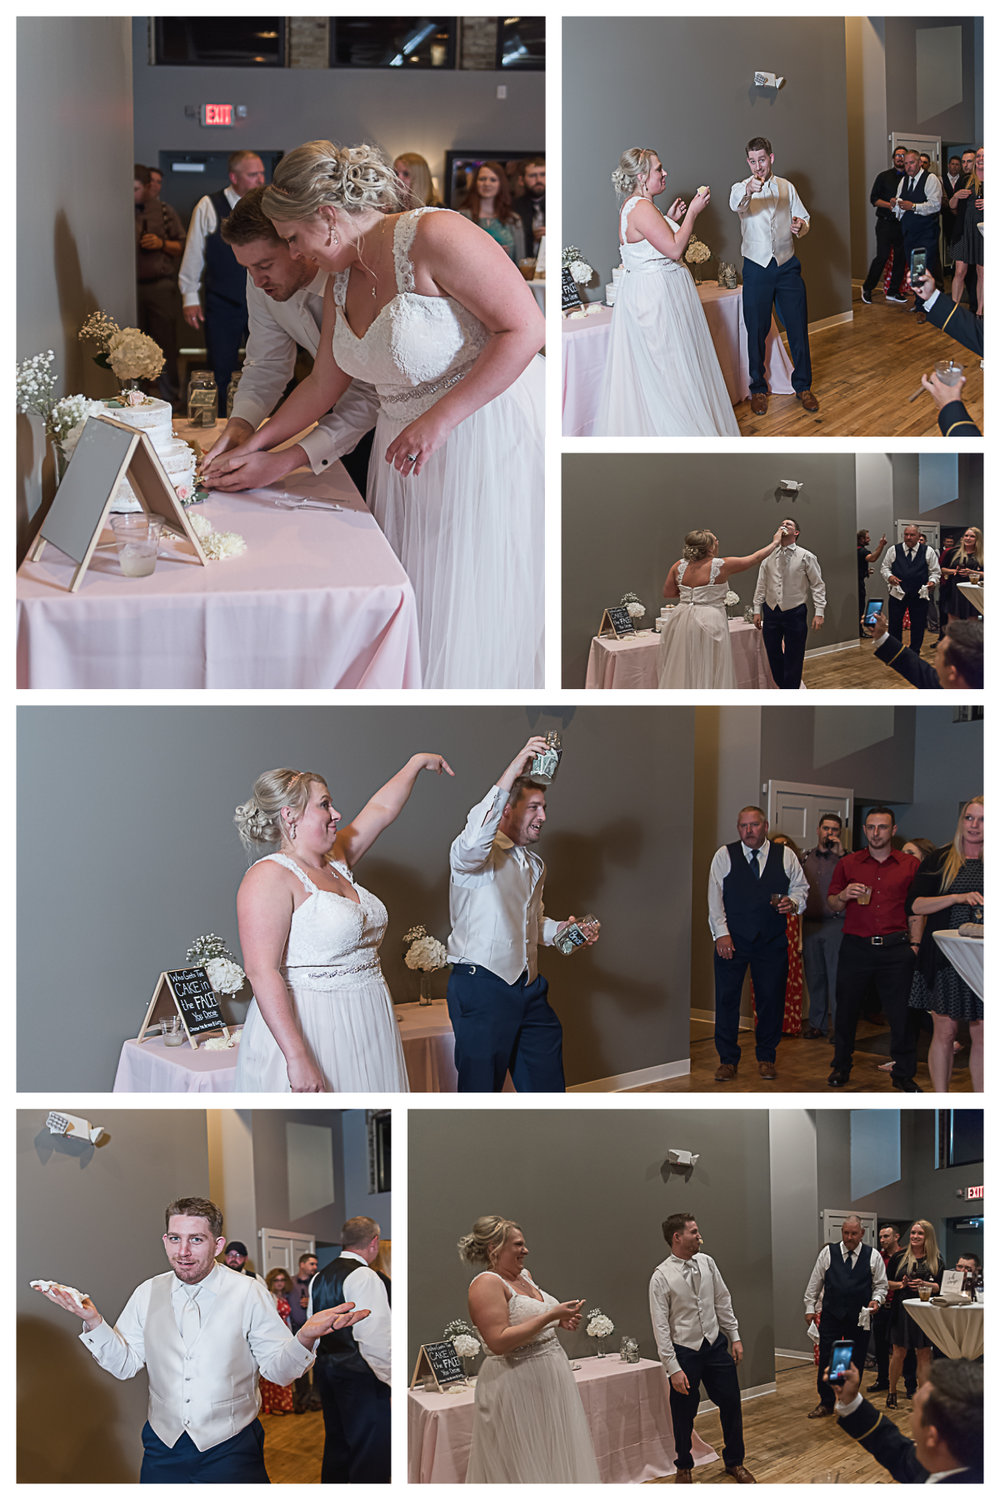 For their cake cutting, there were two jars on the table. All night guests were to put money in either jar on who got the cake in the face. Ryan clearly was the popular choice! HAHA!!